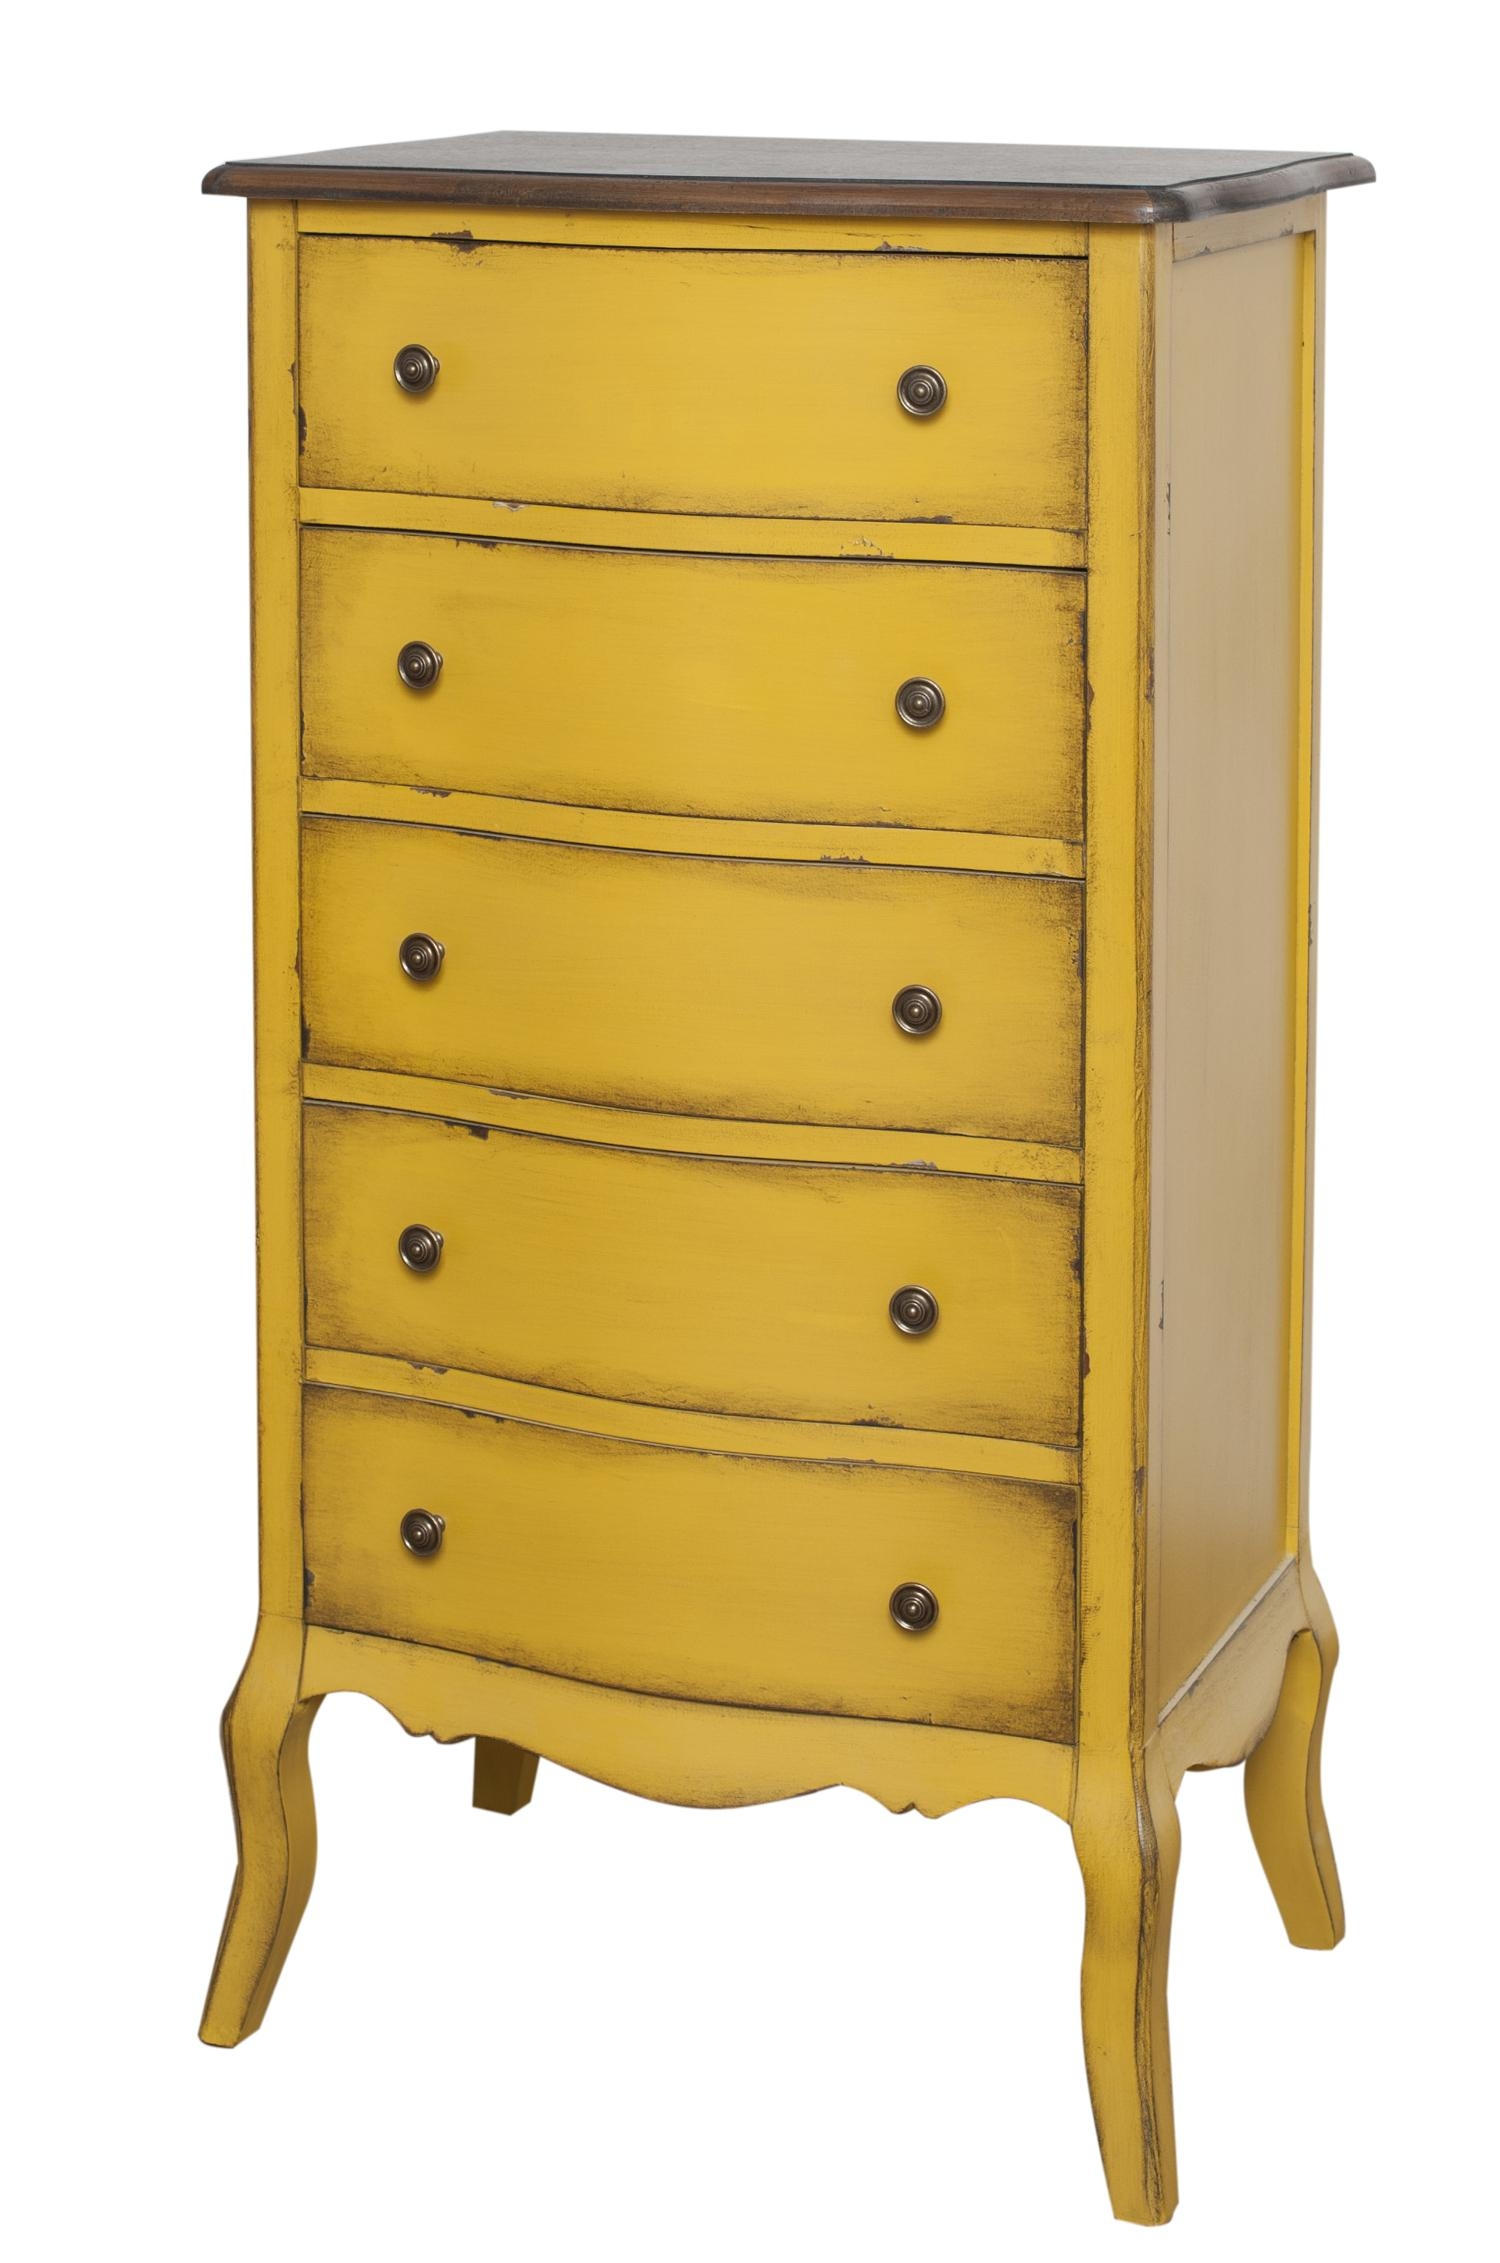 Cabinet din lemn de plop, furnir si MDF, cu 5 sertare Mellow High Yellow / Brown, l61xA42xH112 cm